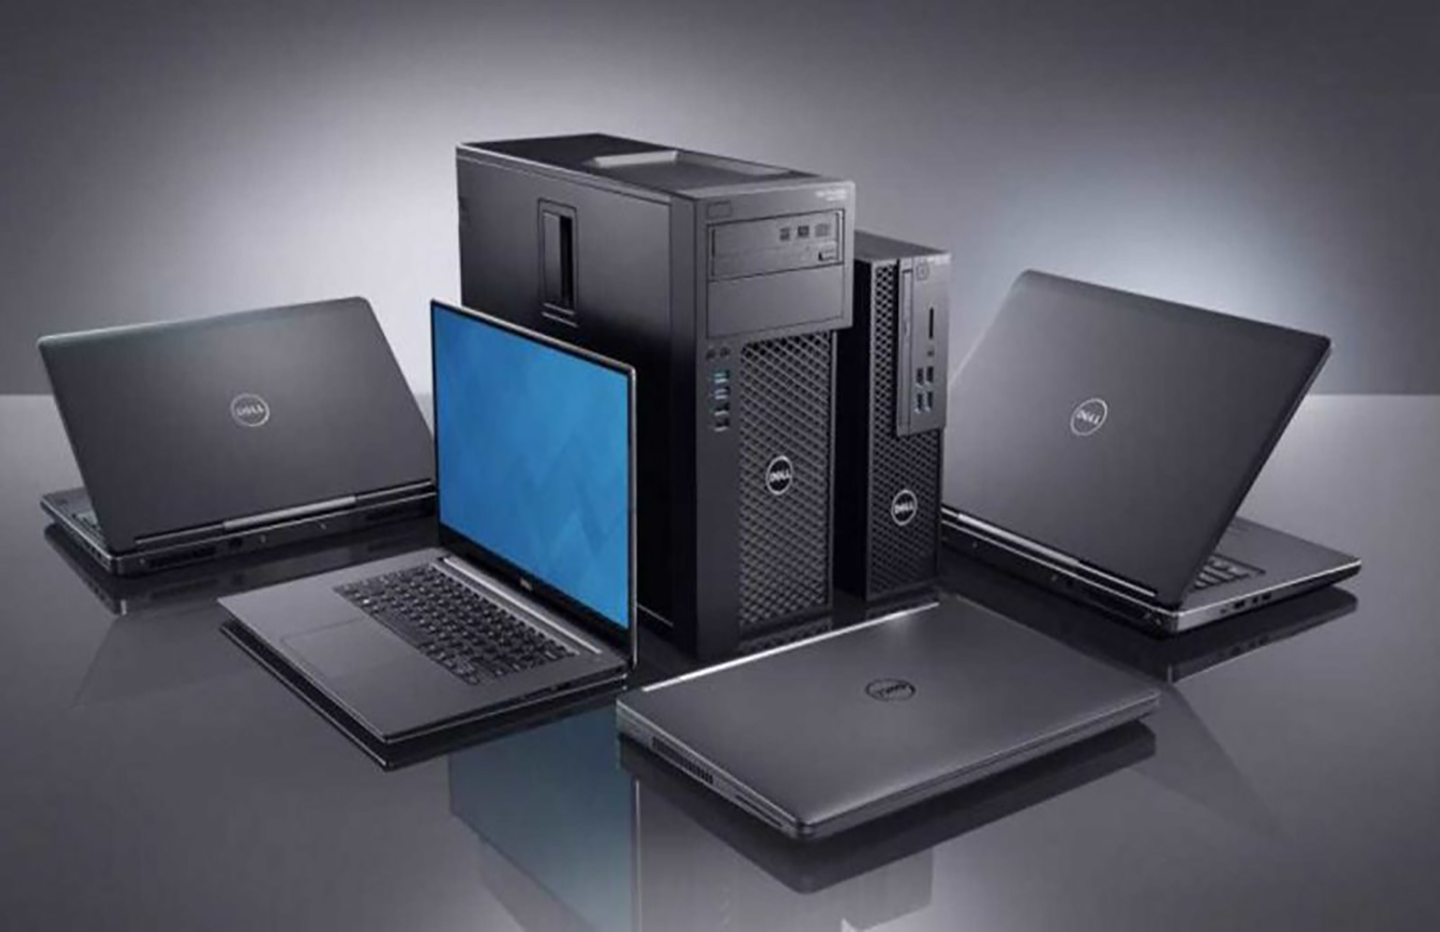 Dell Precision Workstation Hardware